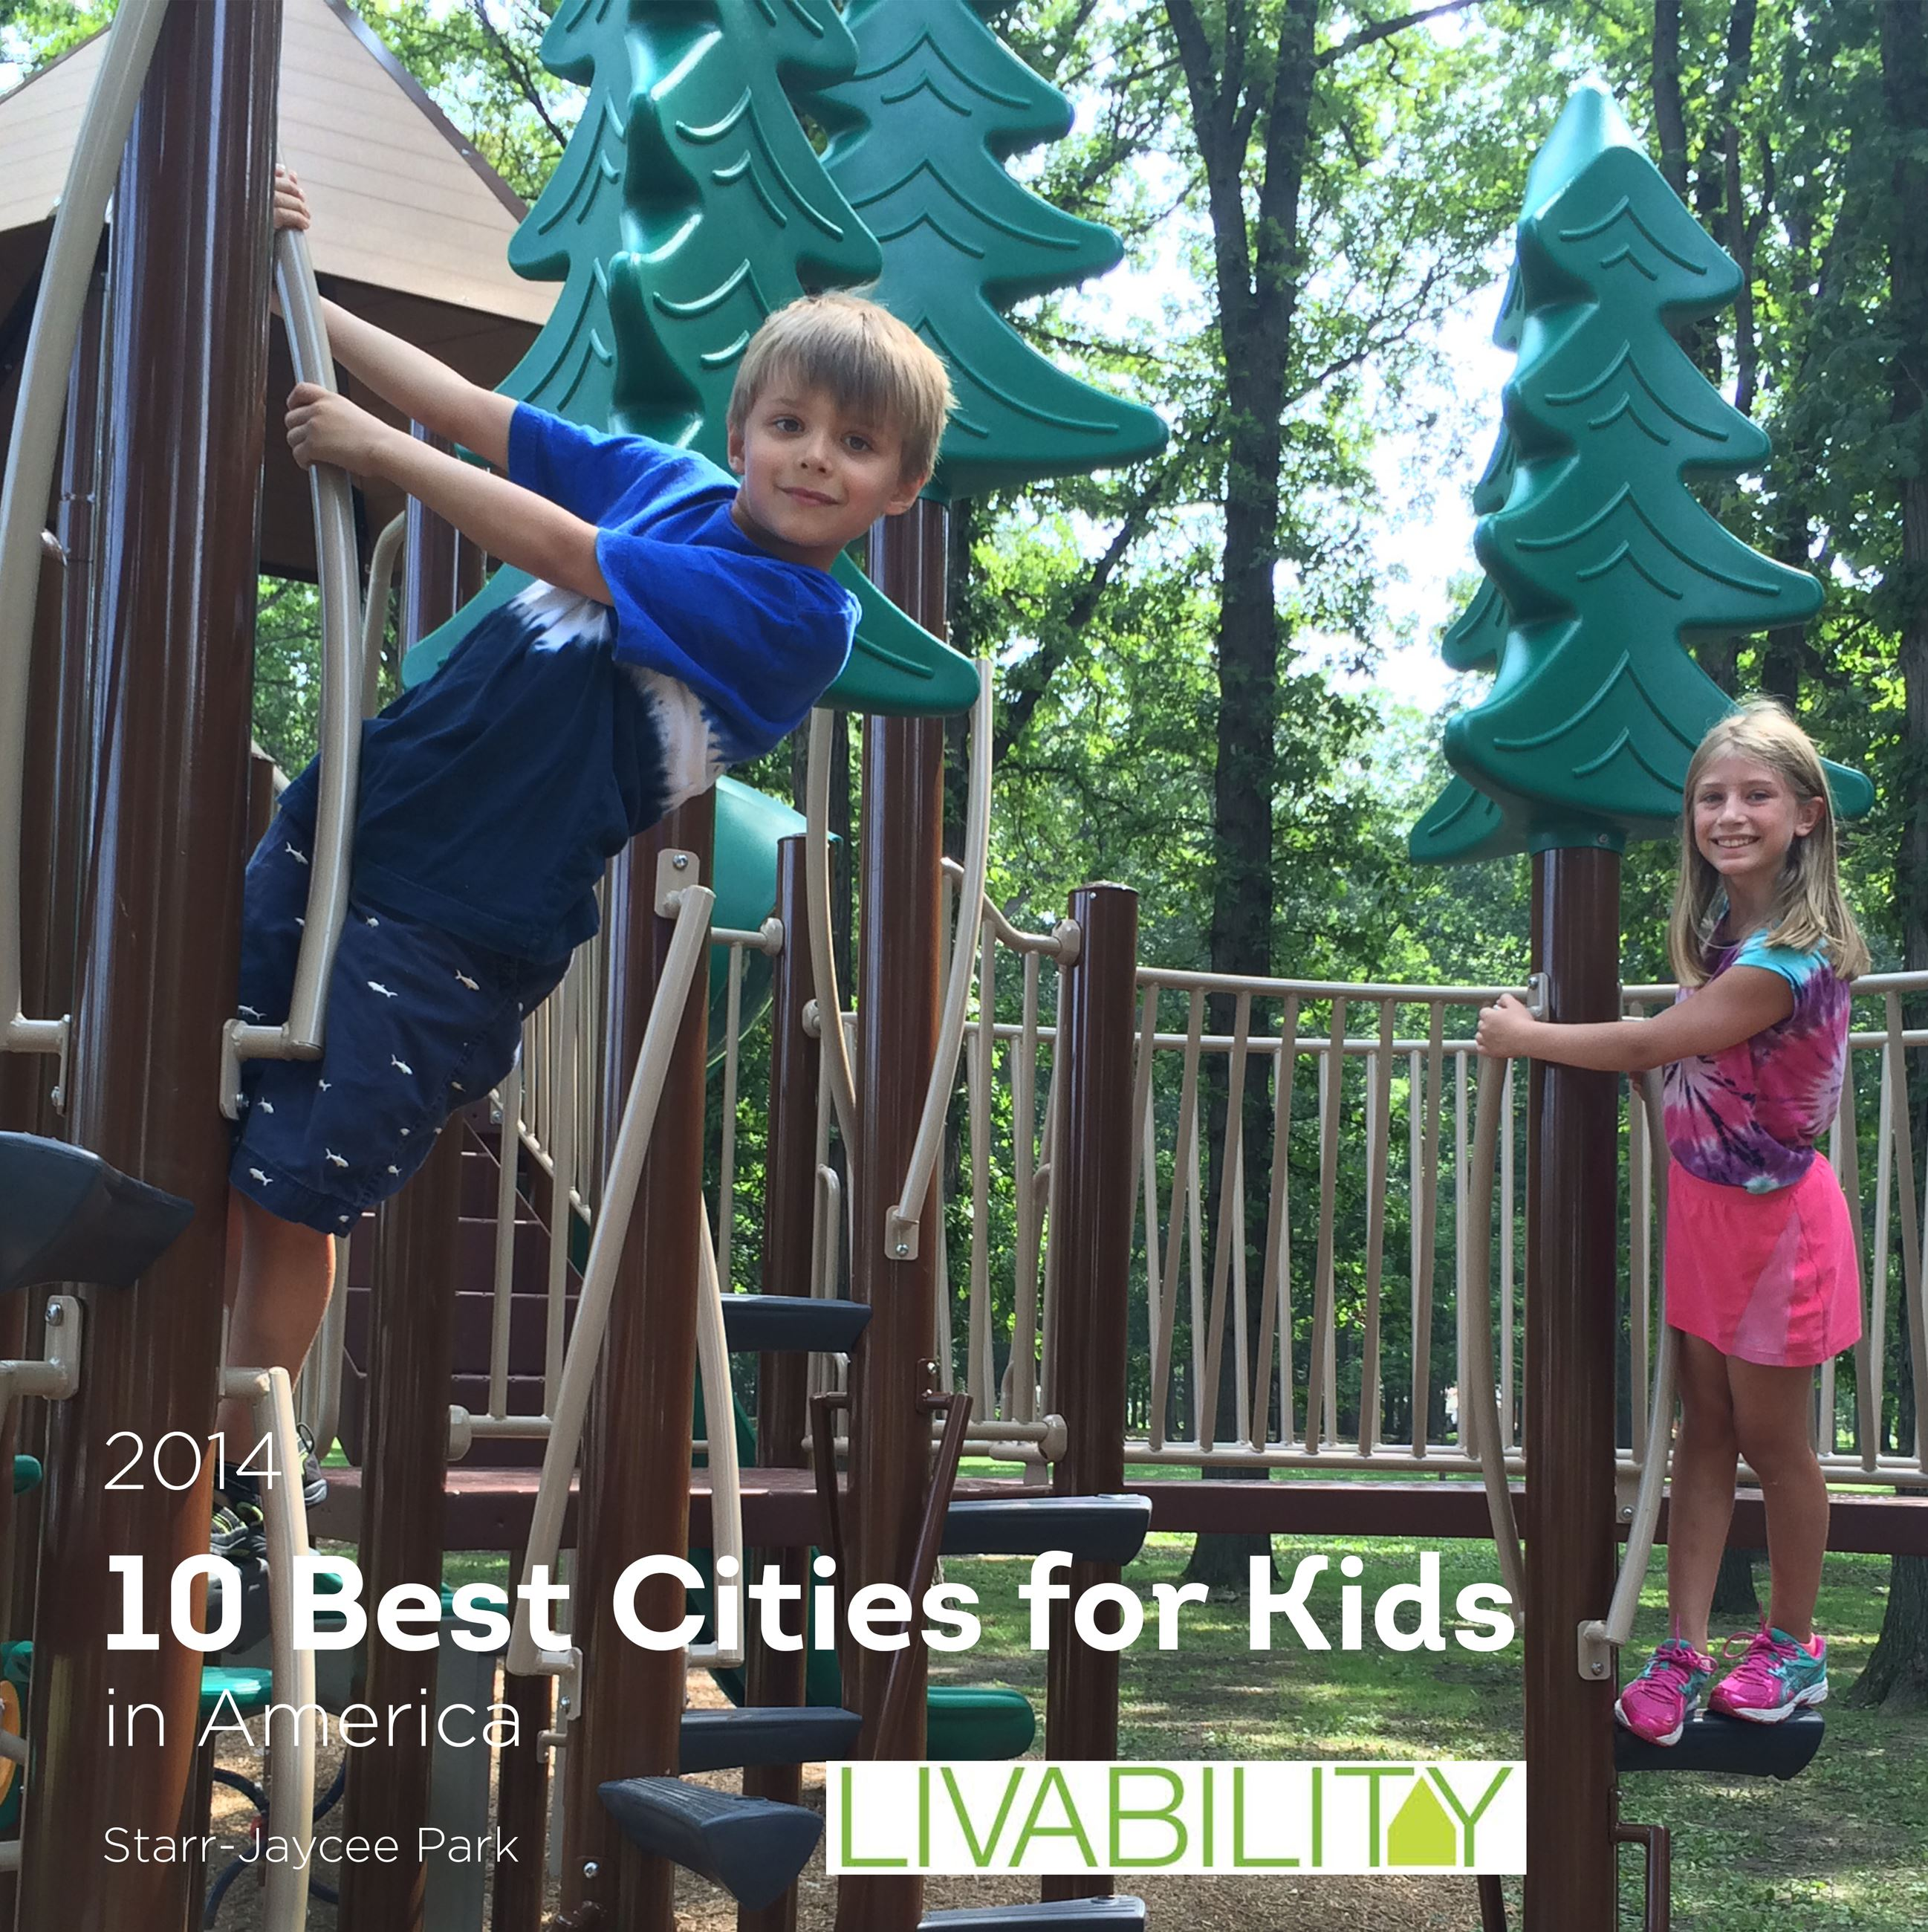 10 Best Cities for Kids